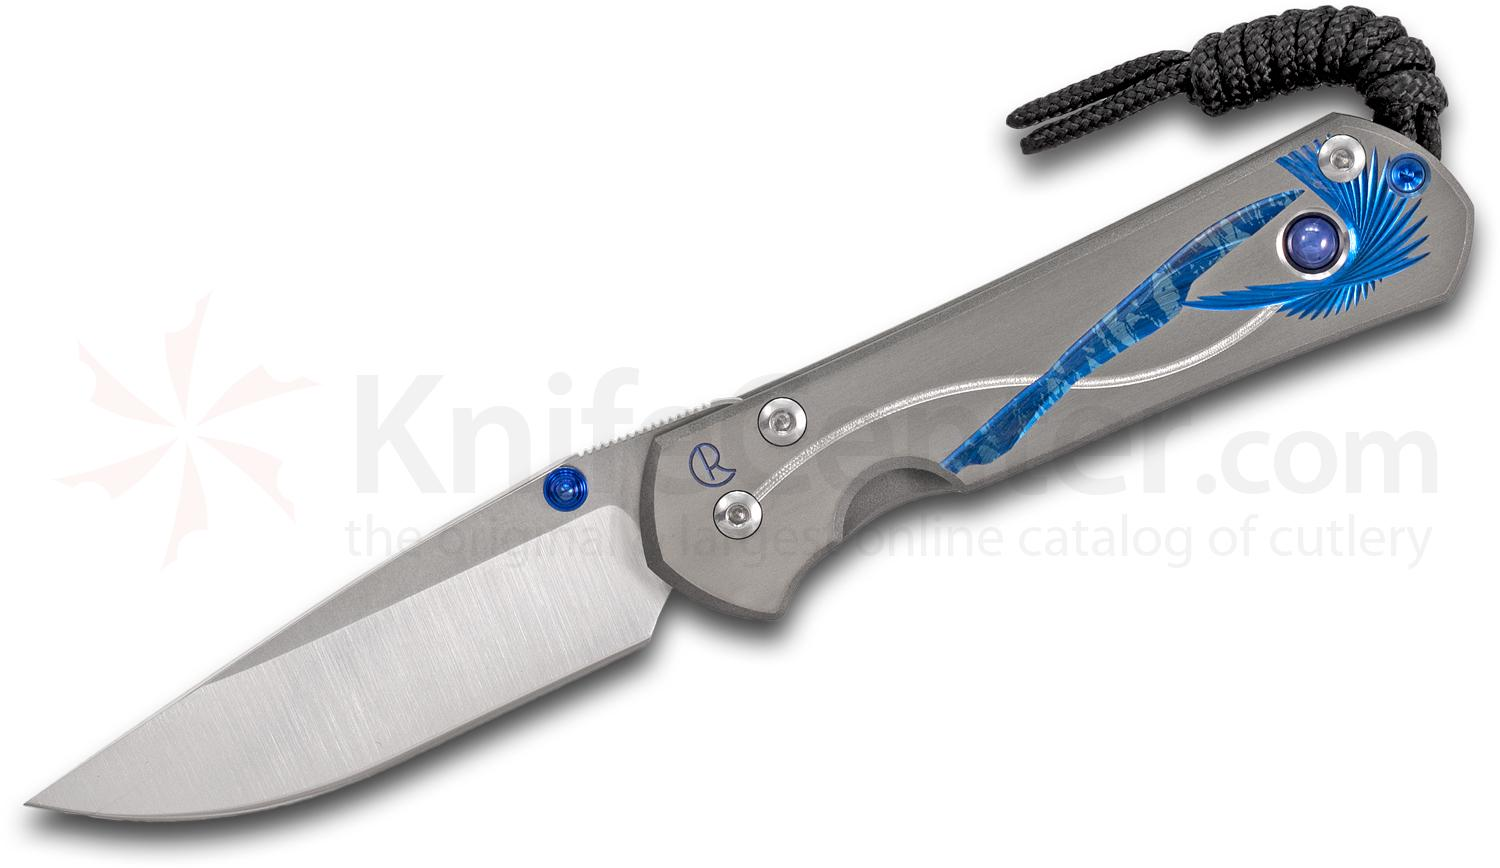 Chris Reeve Small Sebenza 21 Unique Graphic Folding Knife 2.94 inch S35VN Blade, CGG Titanium Handles with Blue Star Sapphire Cabochon Inlay